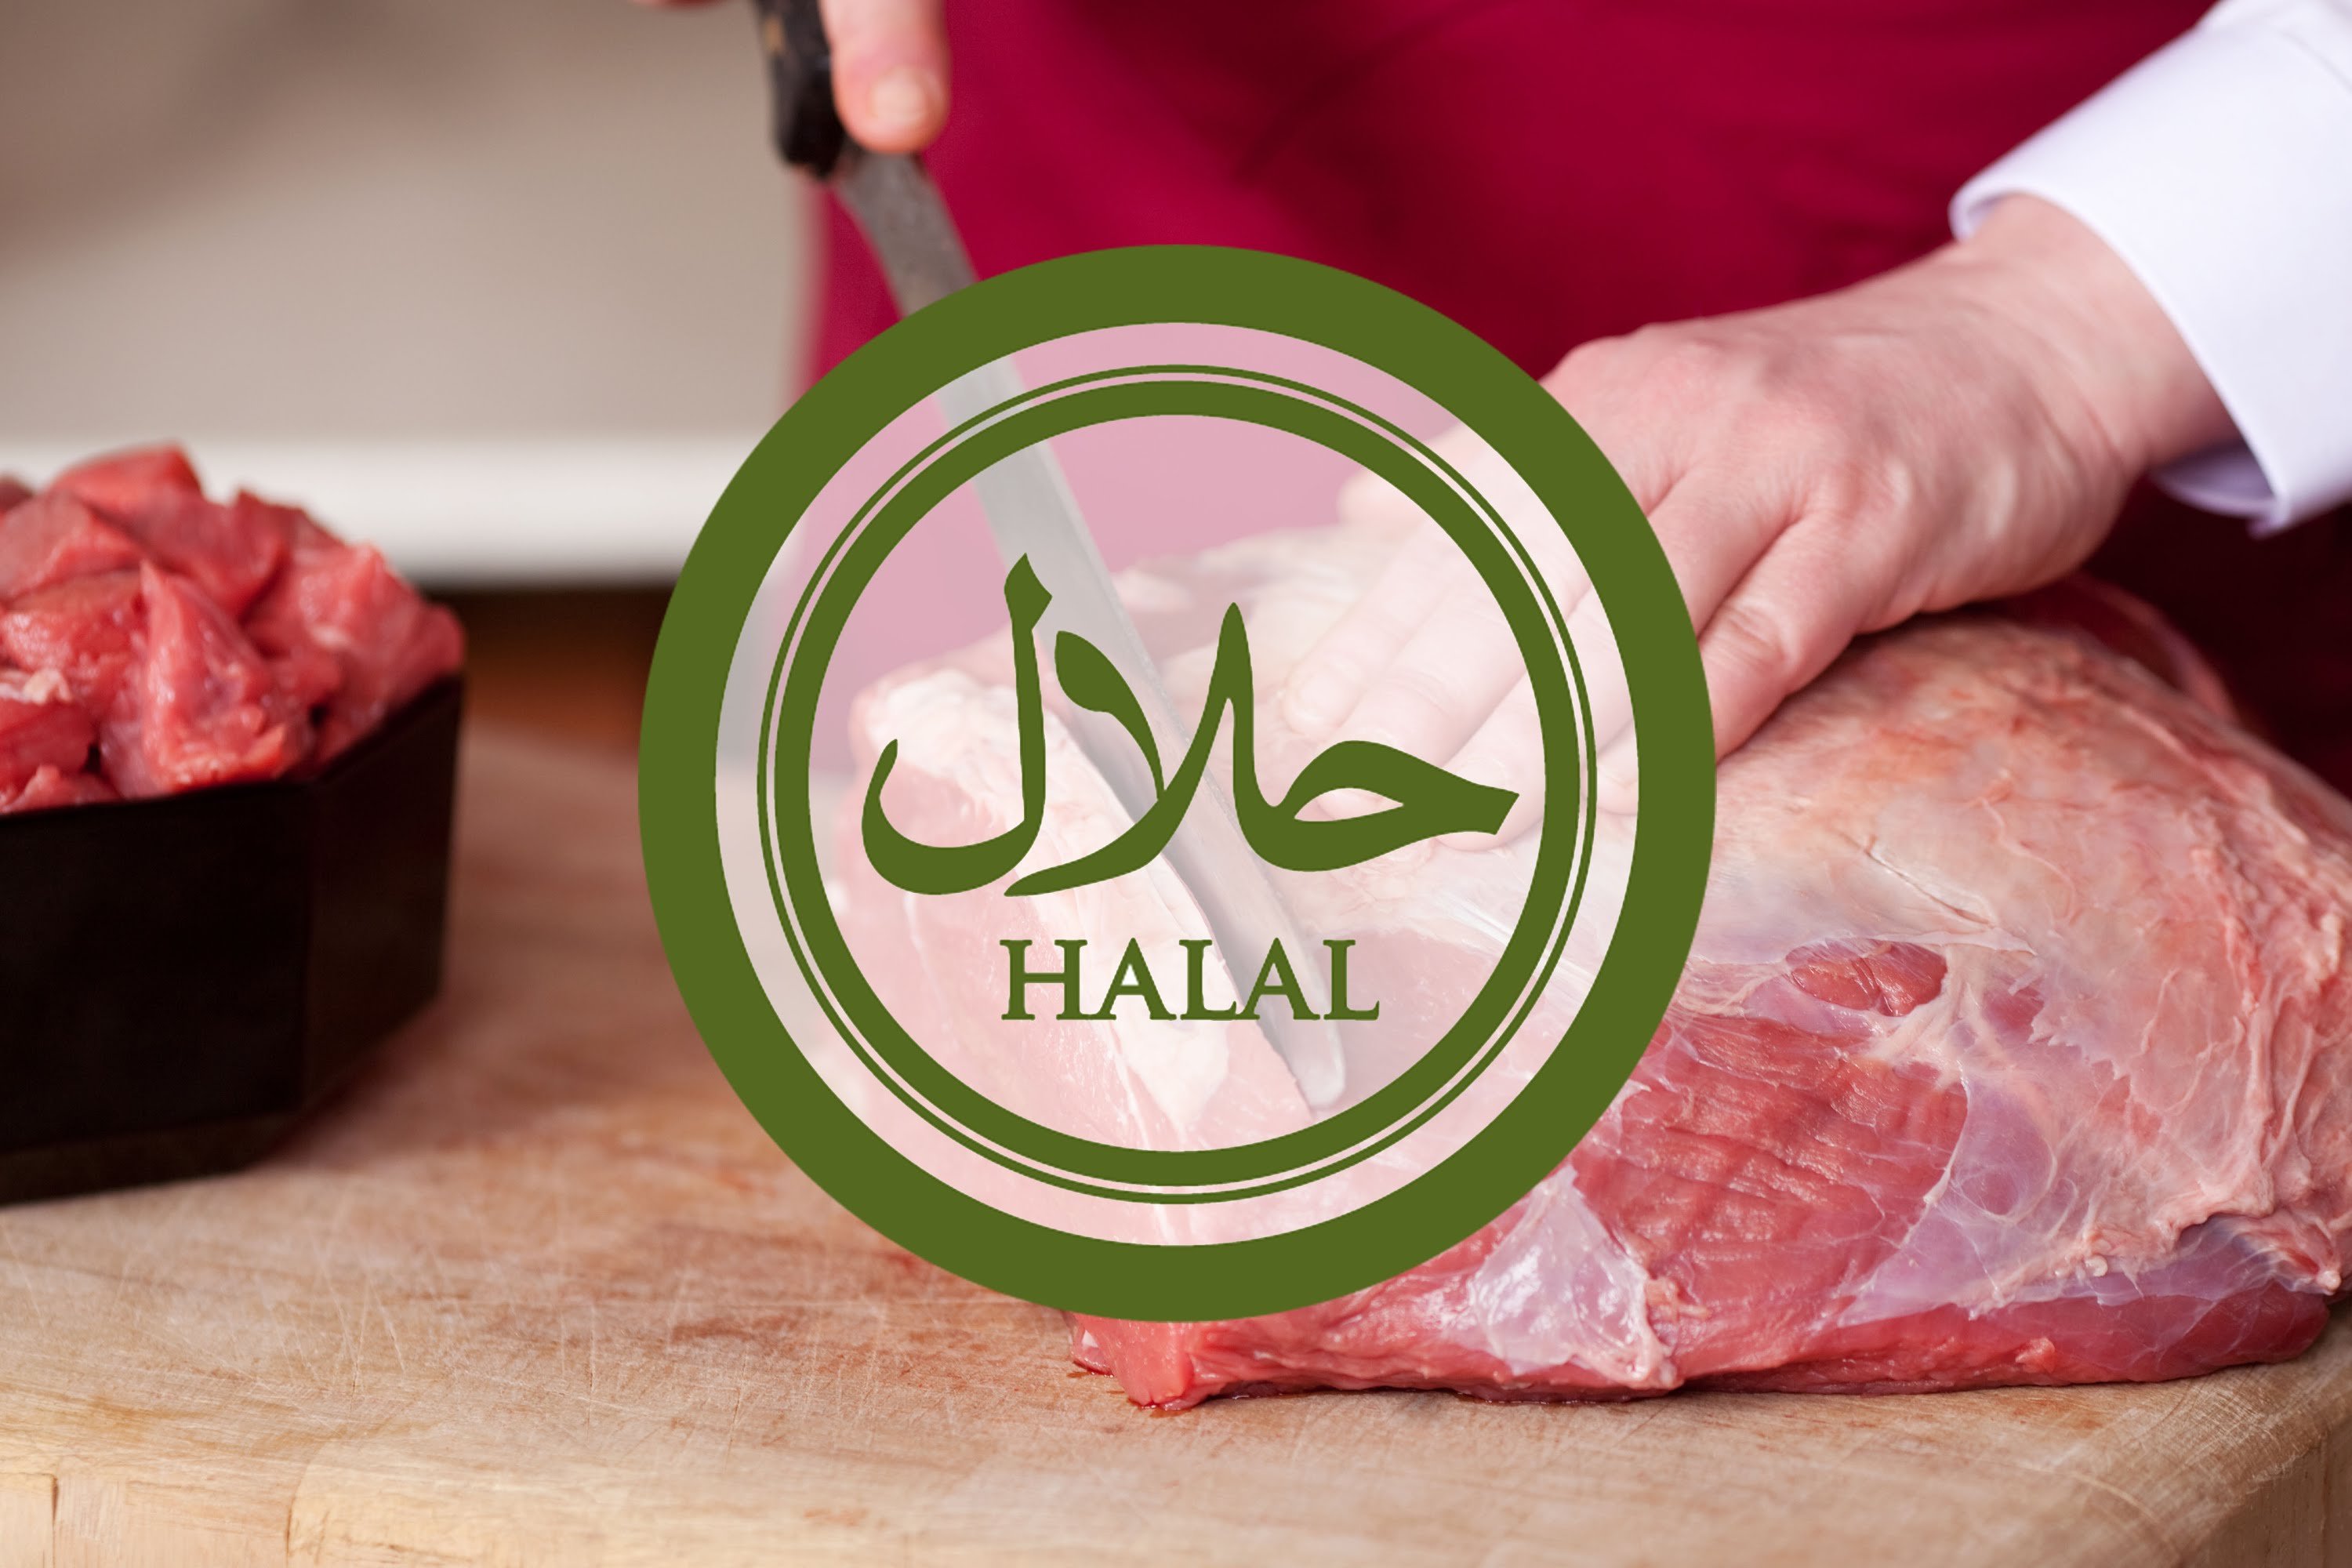 halal logo with meat